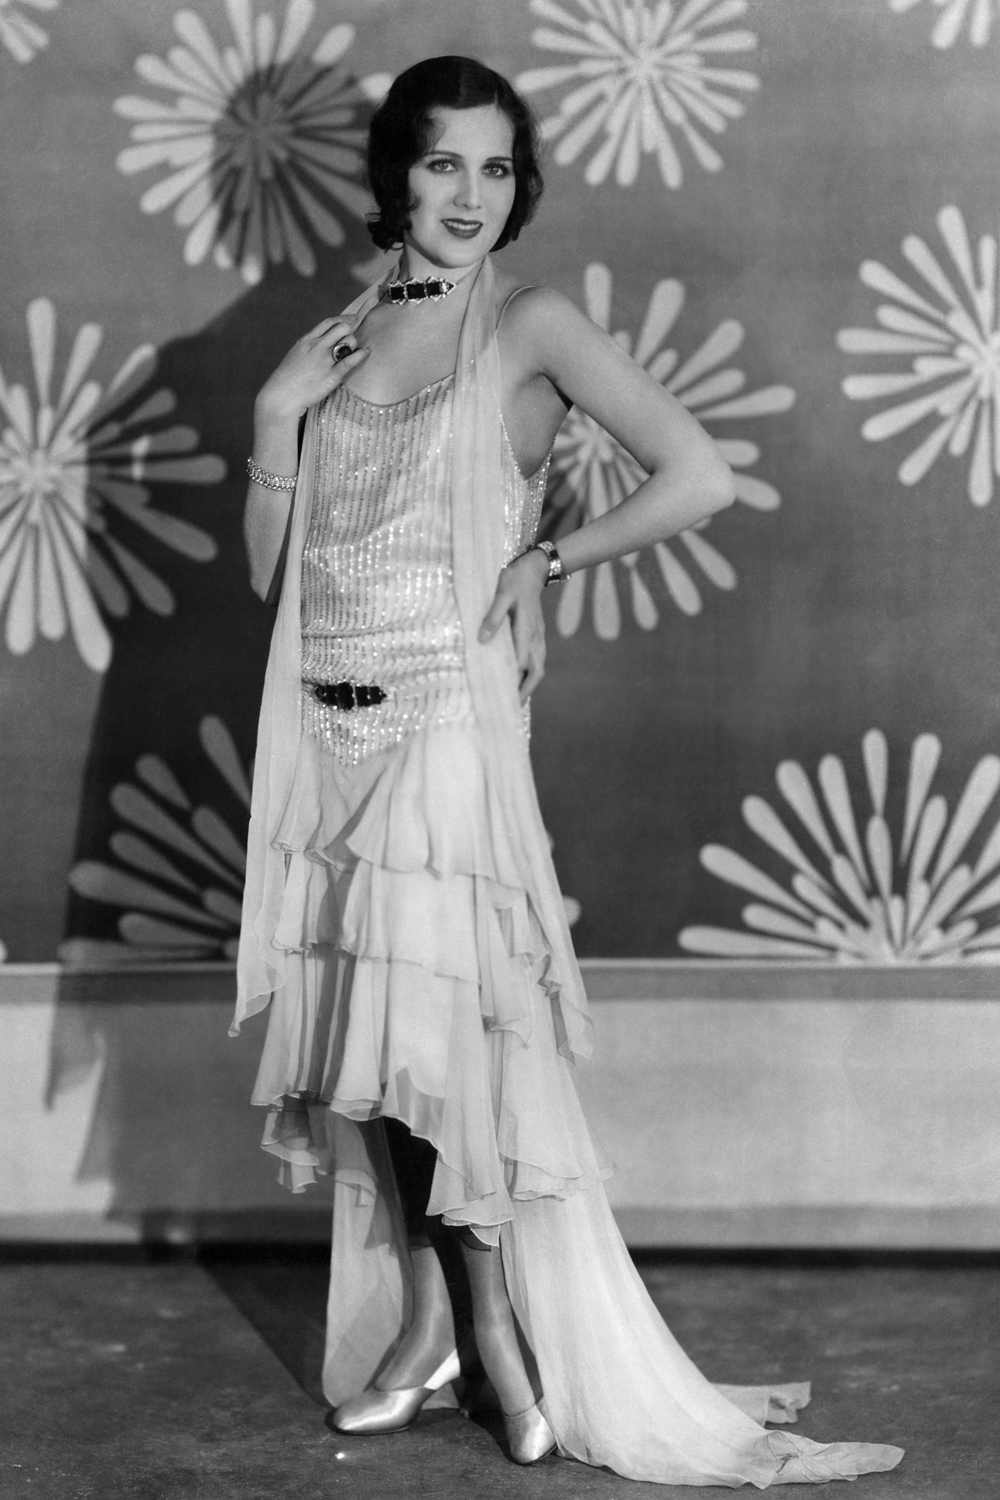 1920s Fashion History: The Iconic Women Who Defined It